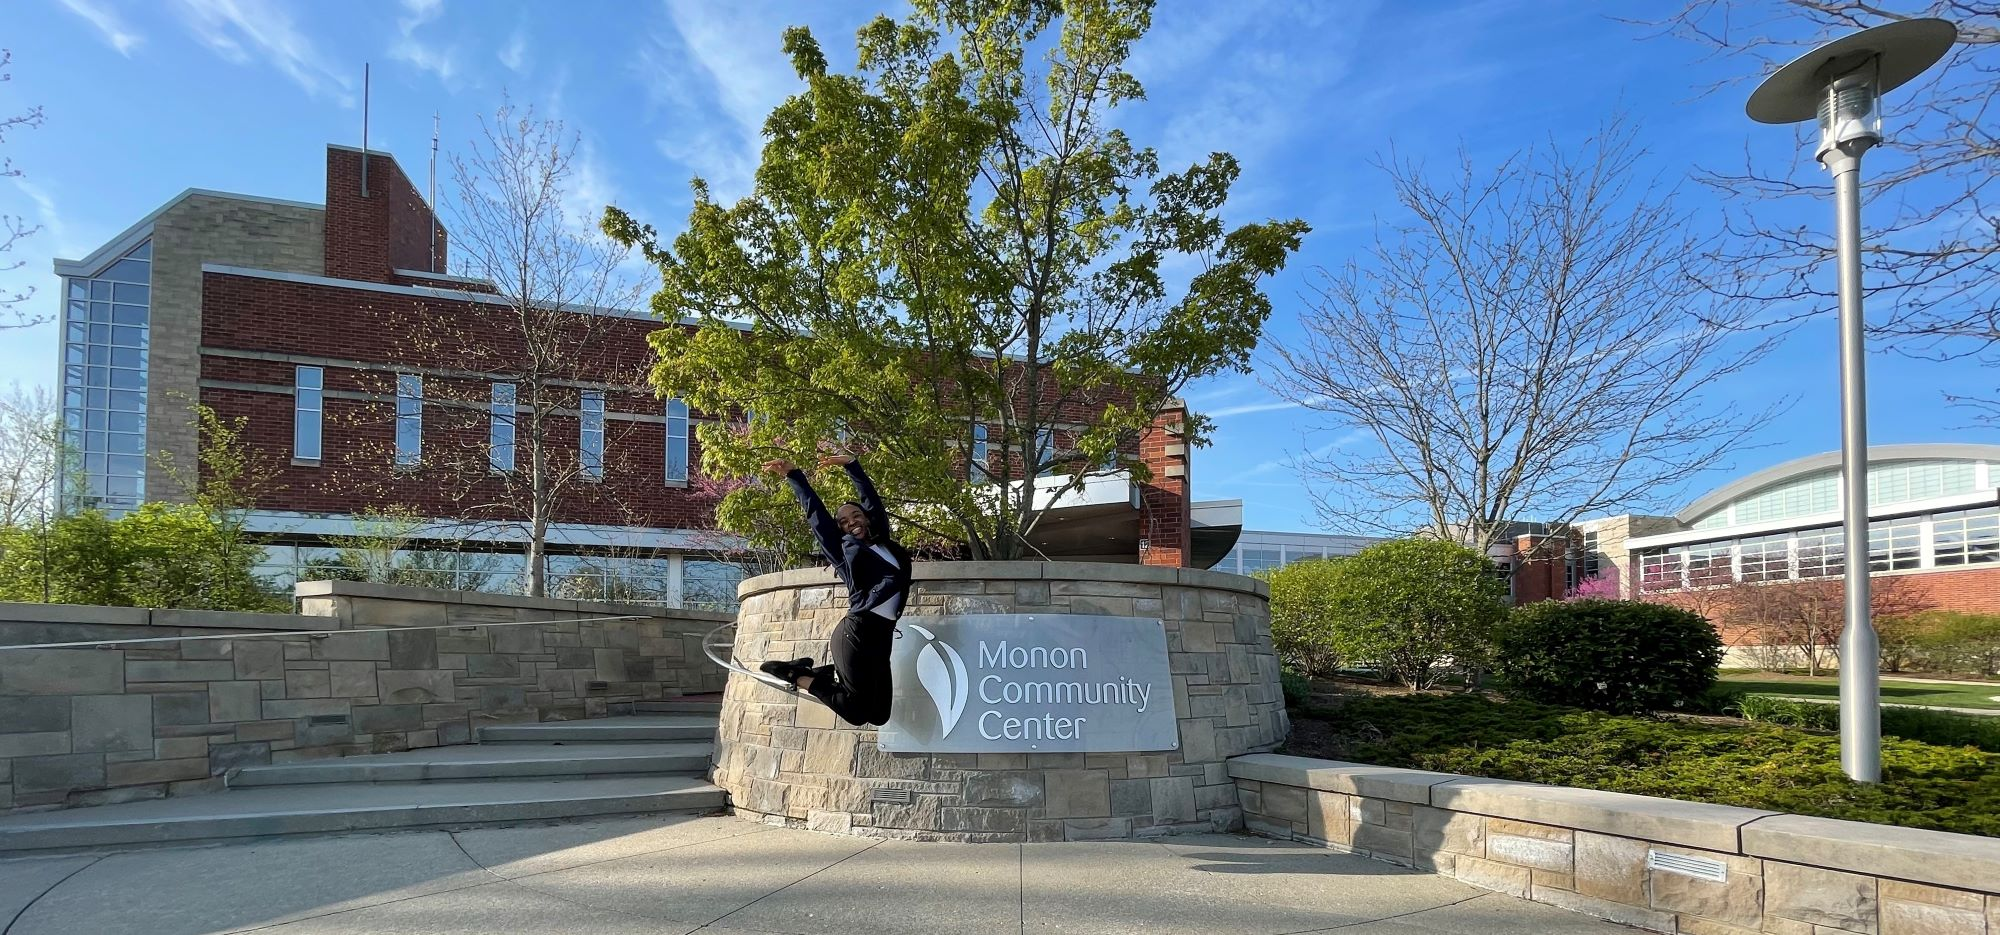 Breanna jumping in front of the Monon Community Center